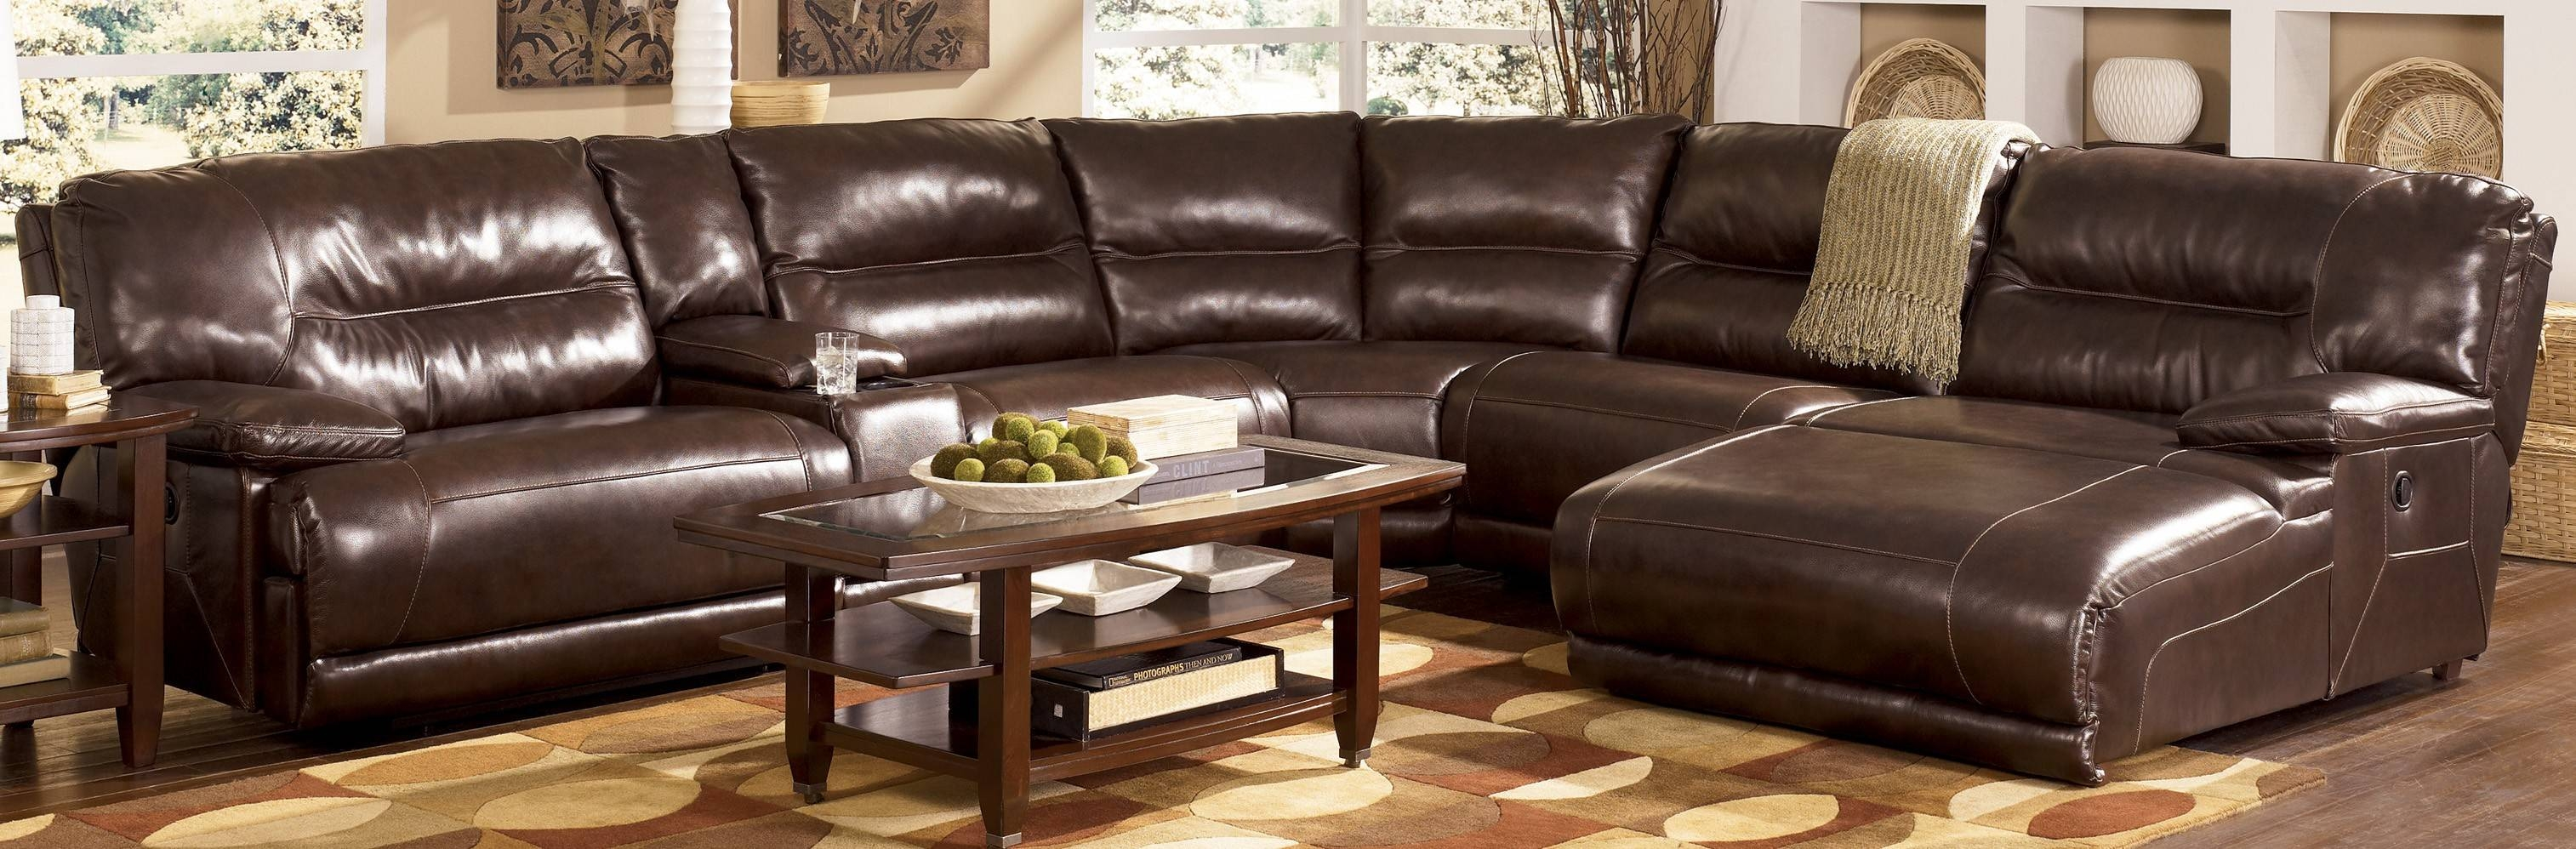 Furniture: Fantastic Sectional Couches With Recliners For Your pertaining to Eggplant Sectional Sofa (Image 15 of 30)